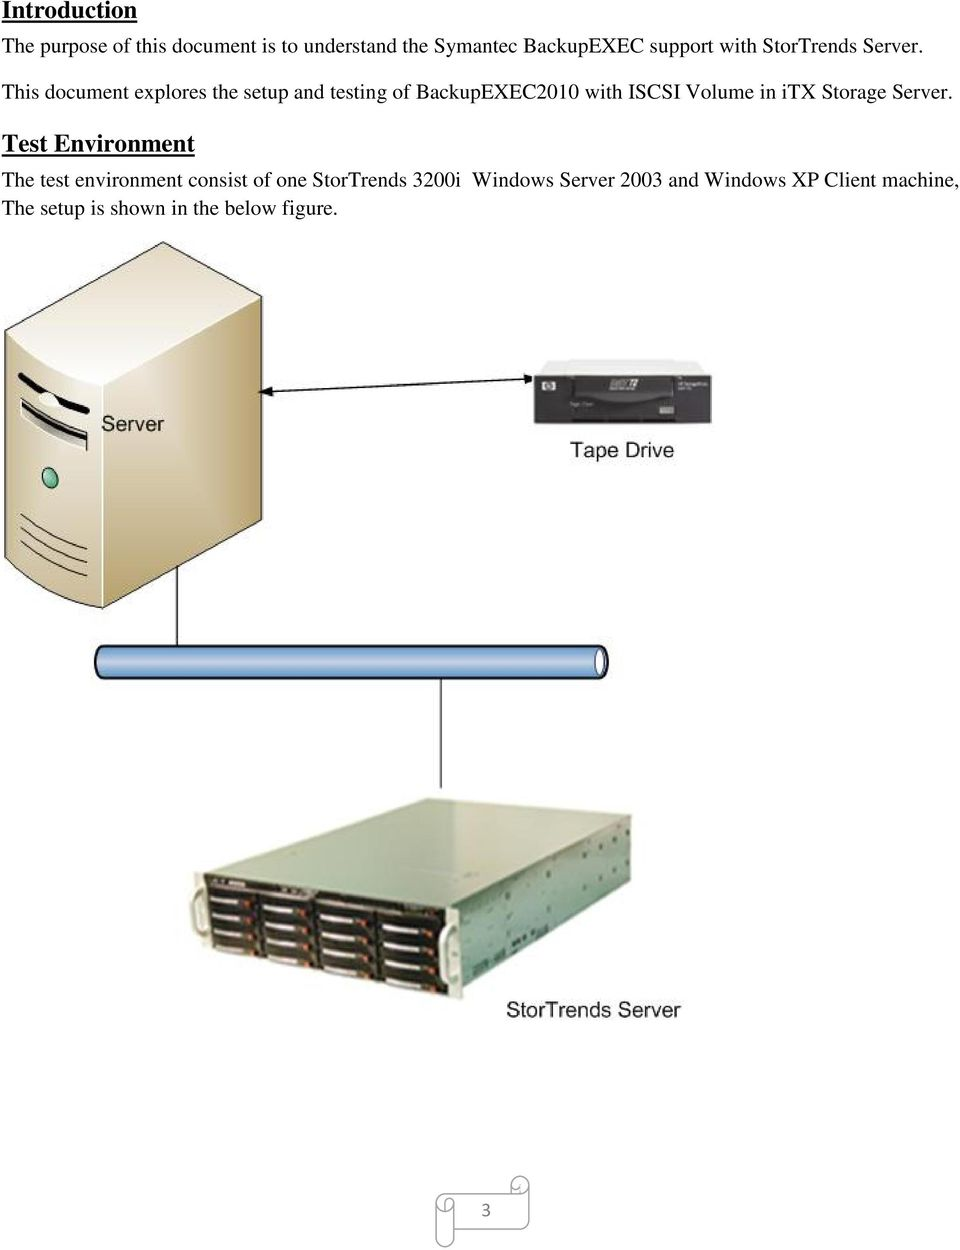 This document explores the setup and testing of BackupEXEC2010 with ISCSI Volume in itx Storage